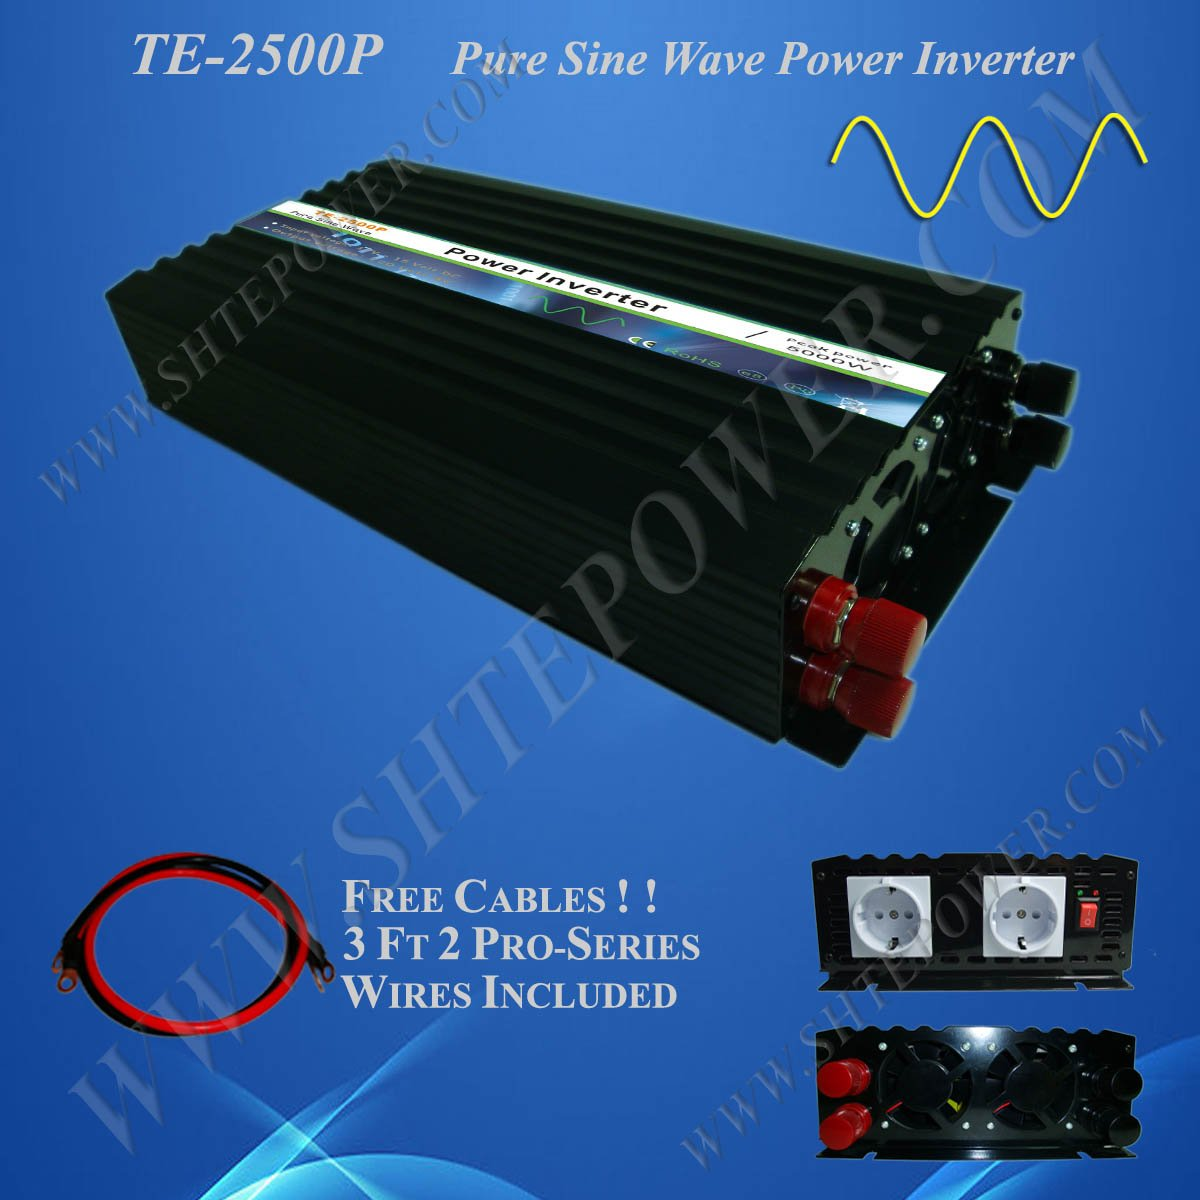 2500w Pure Sine Wave Inverter, Solar Power Invertor, DC 48v to AC 230v Power Inverter чехол для samsung galaxy a7 2016 sm a710f clear view cover черный